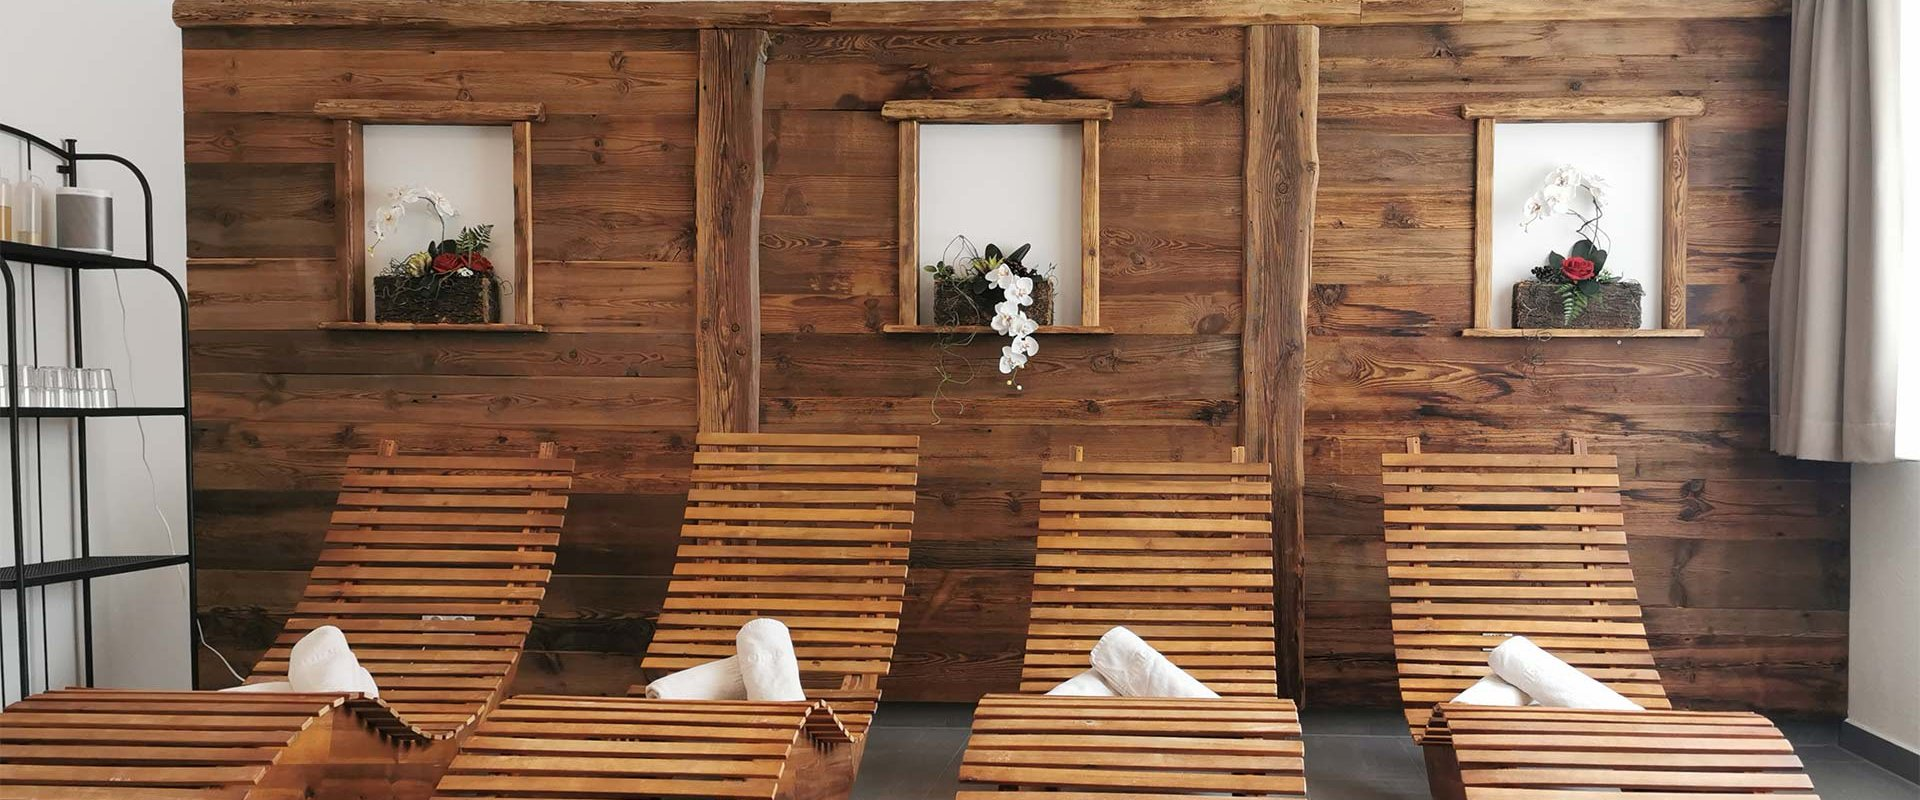 Sauna & Wellness at Granbichlhof